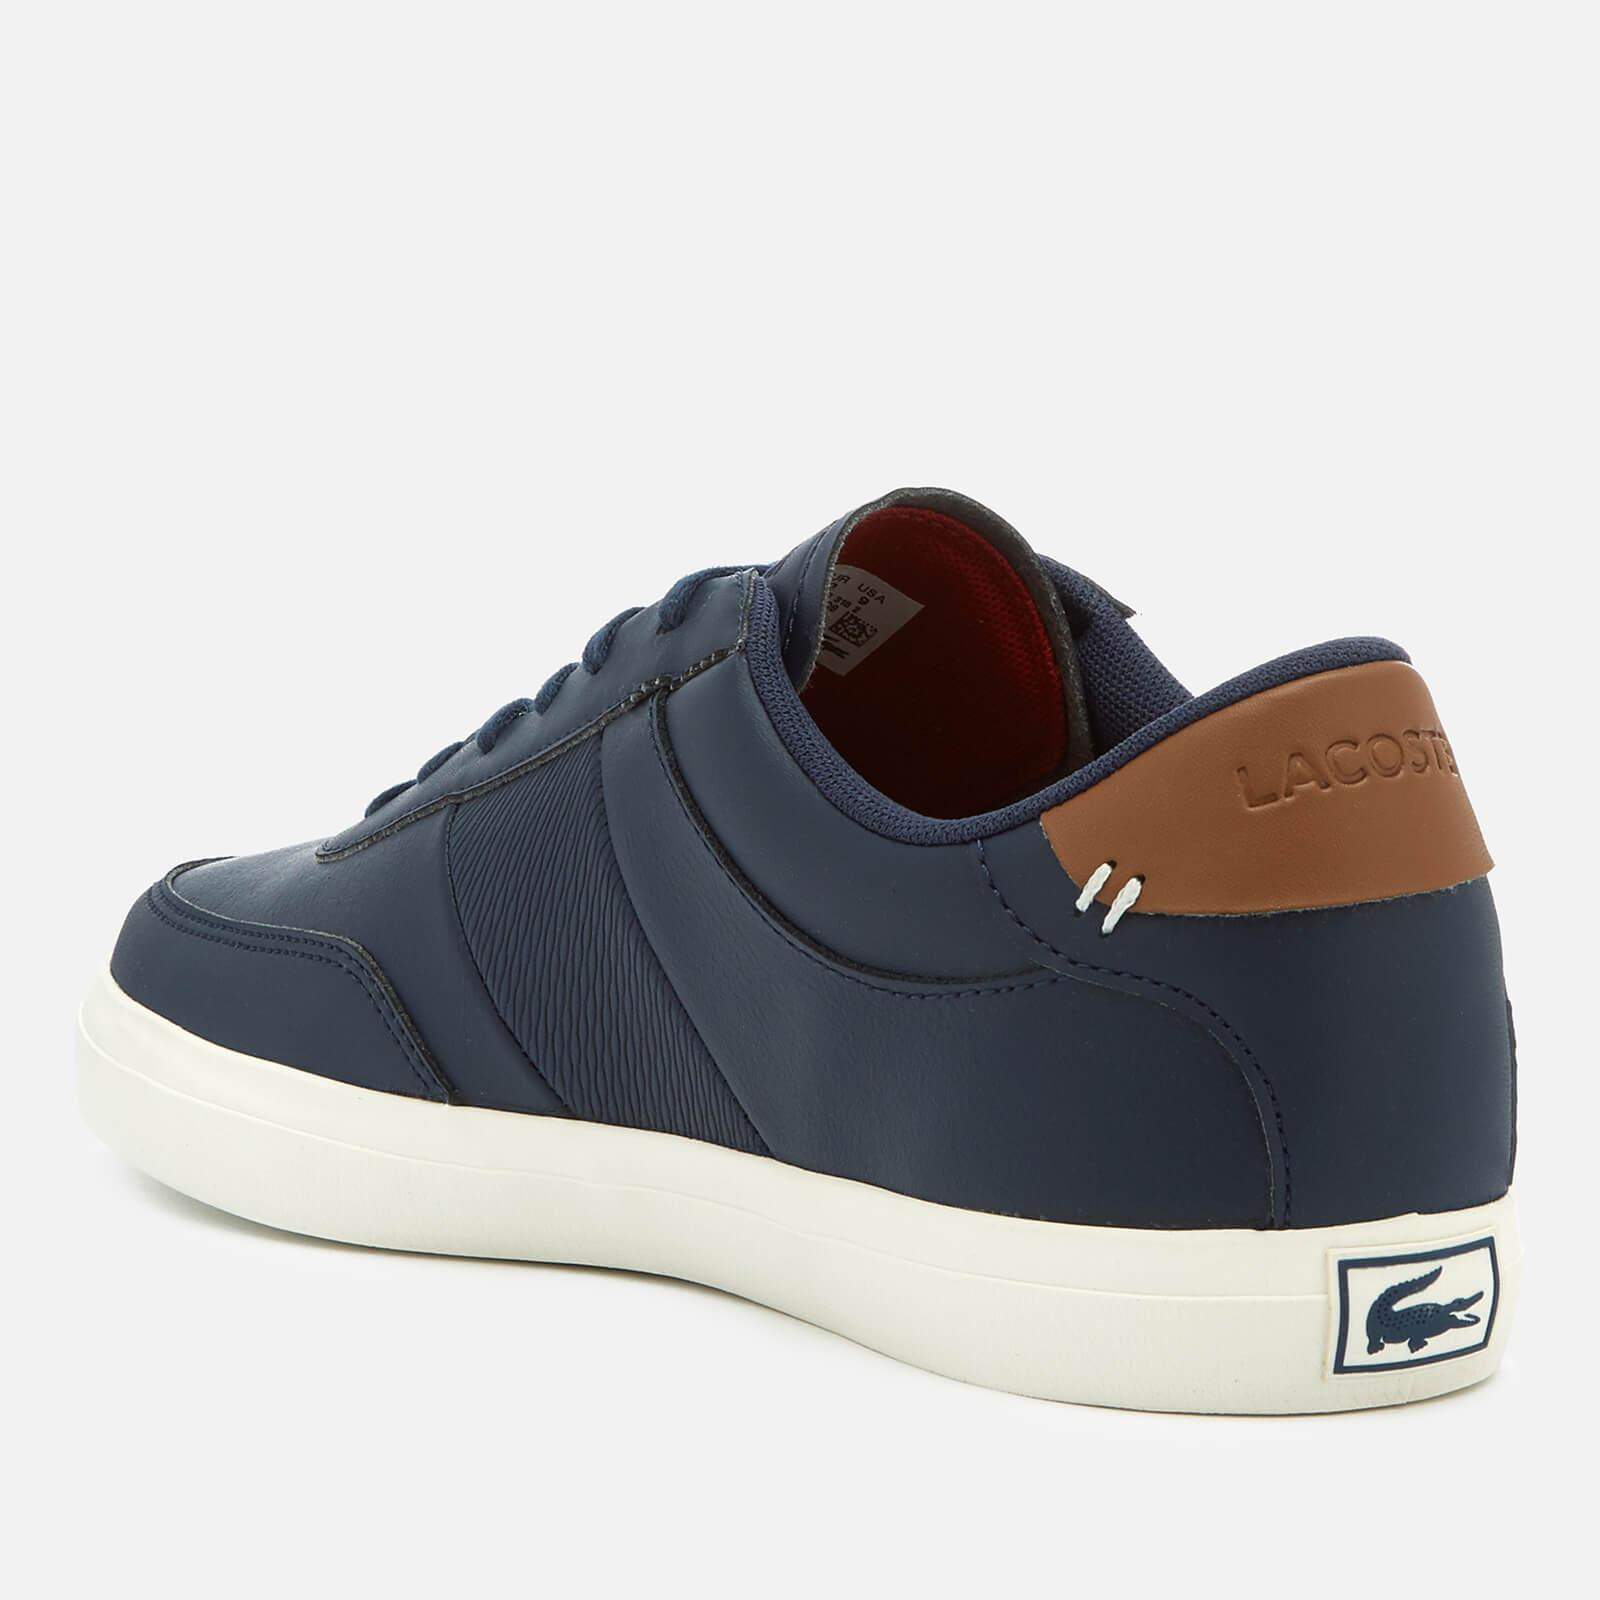 158148580 Lacoste Court-master 318 2 Leather Vulcanised Trainers in Blue for ...